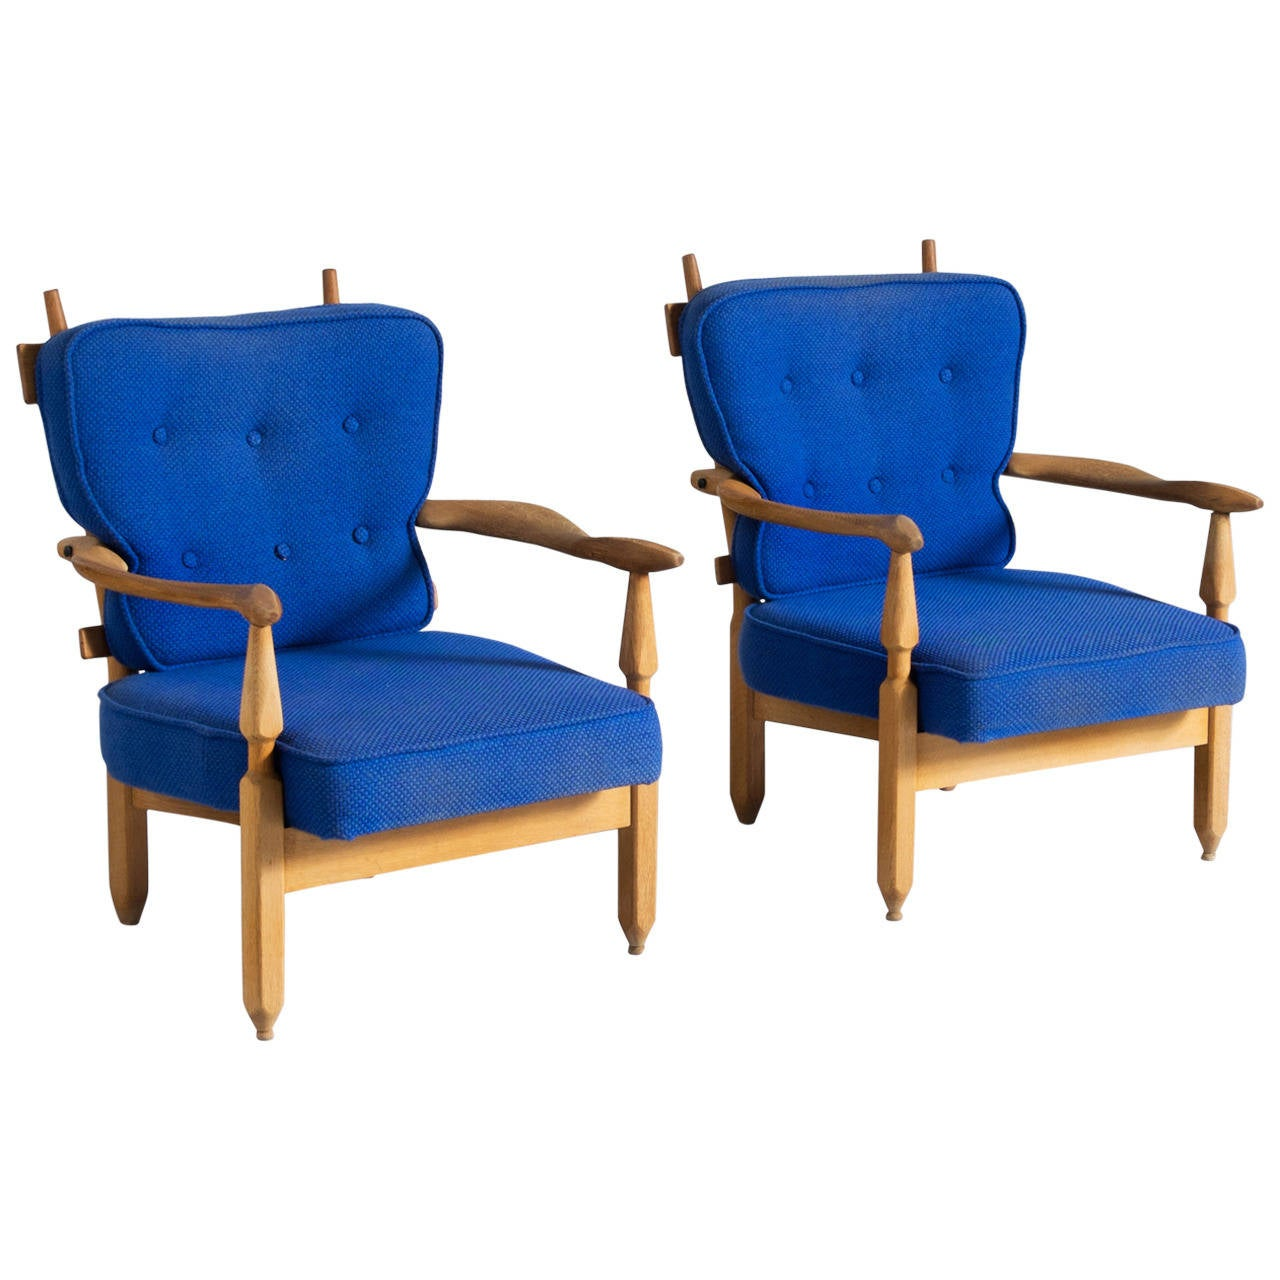 Guillerme and Chambron Lounge Chairs in Oak